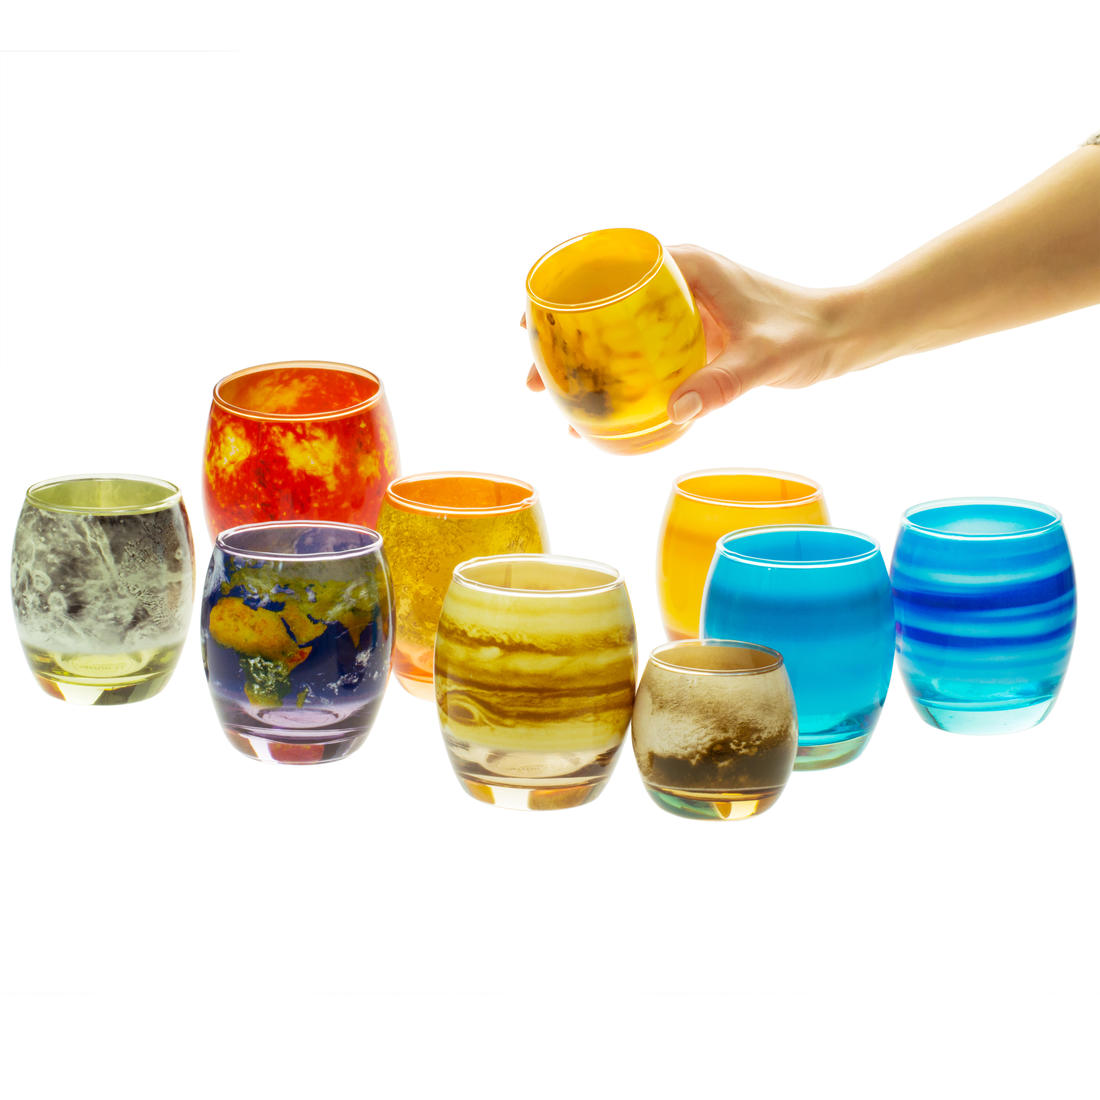 solar system glassware set - photo #9